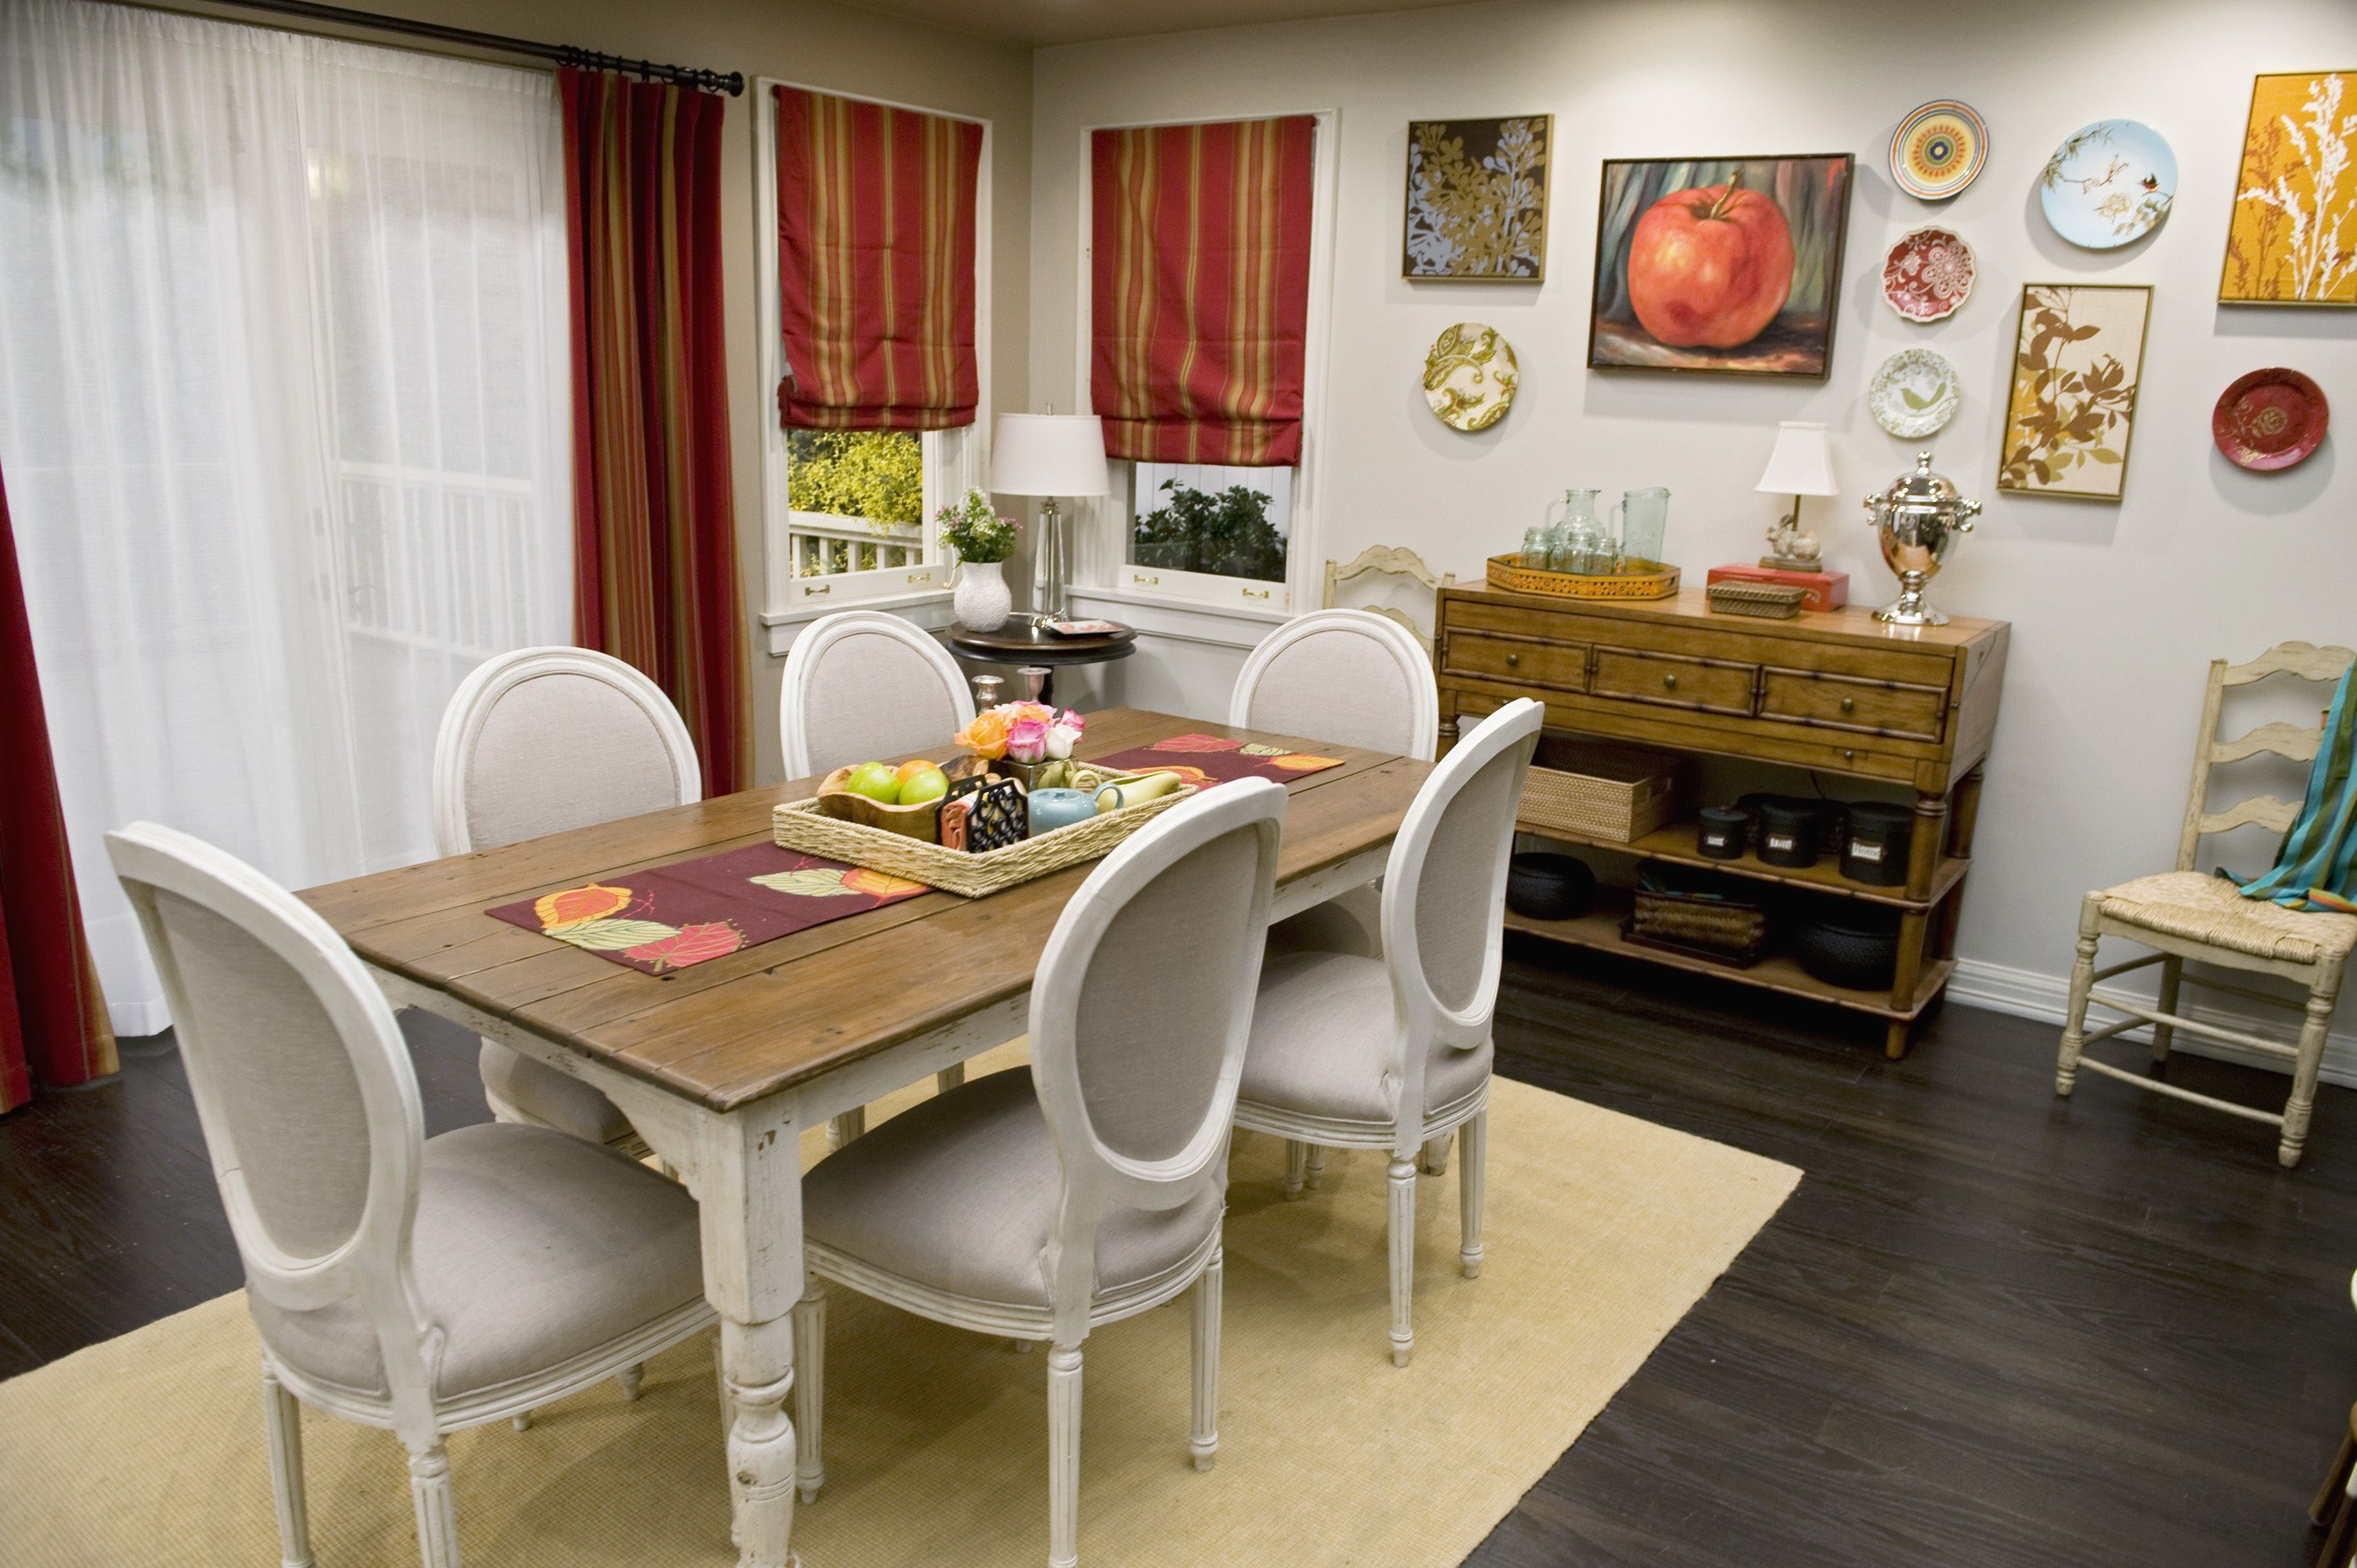 Dining room from modern family set like the wall eclectic mix of